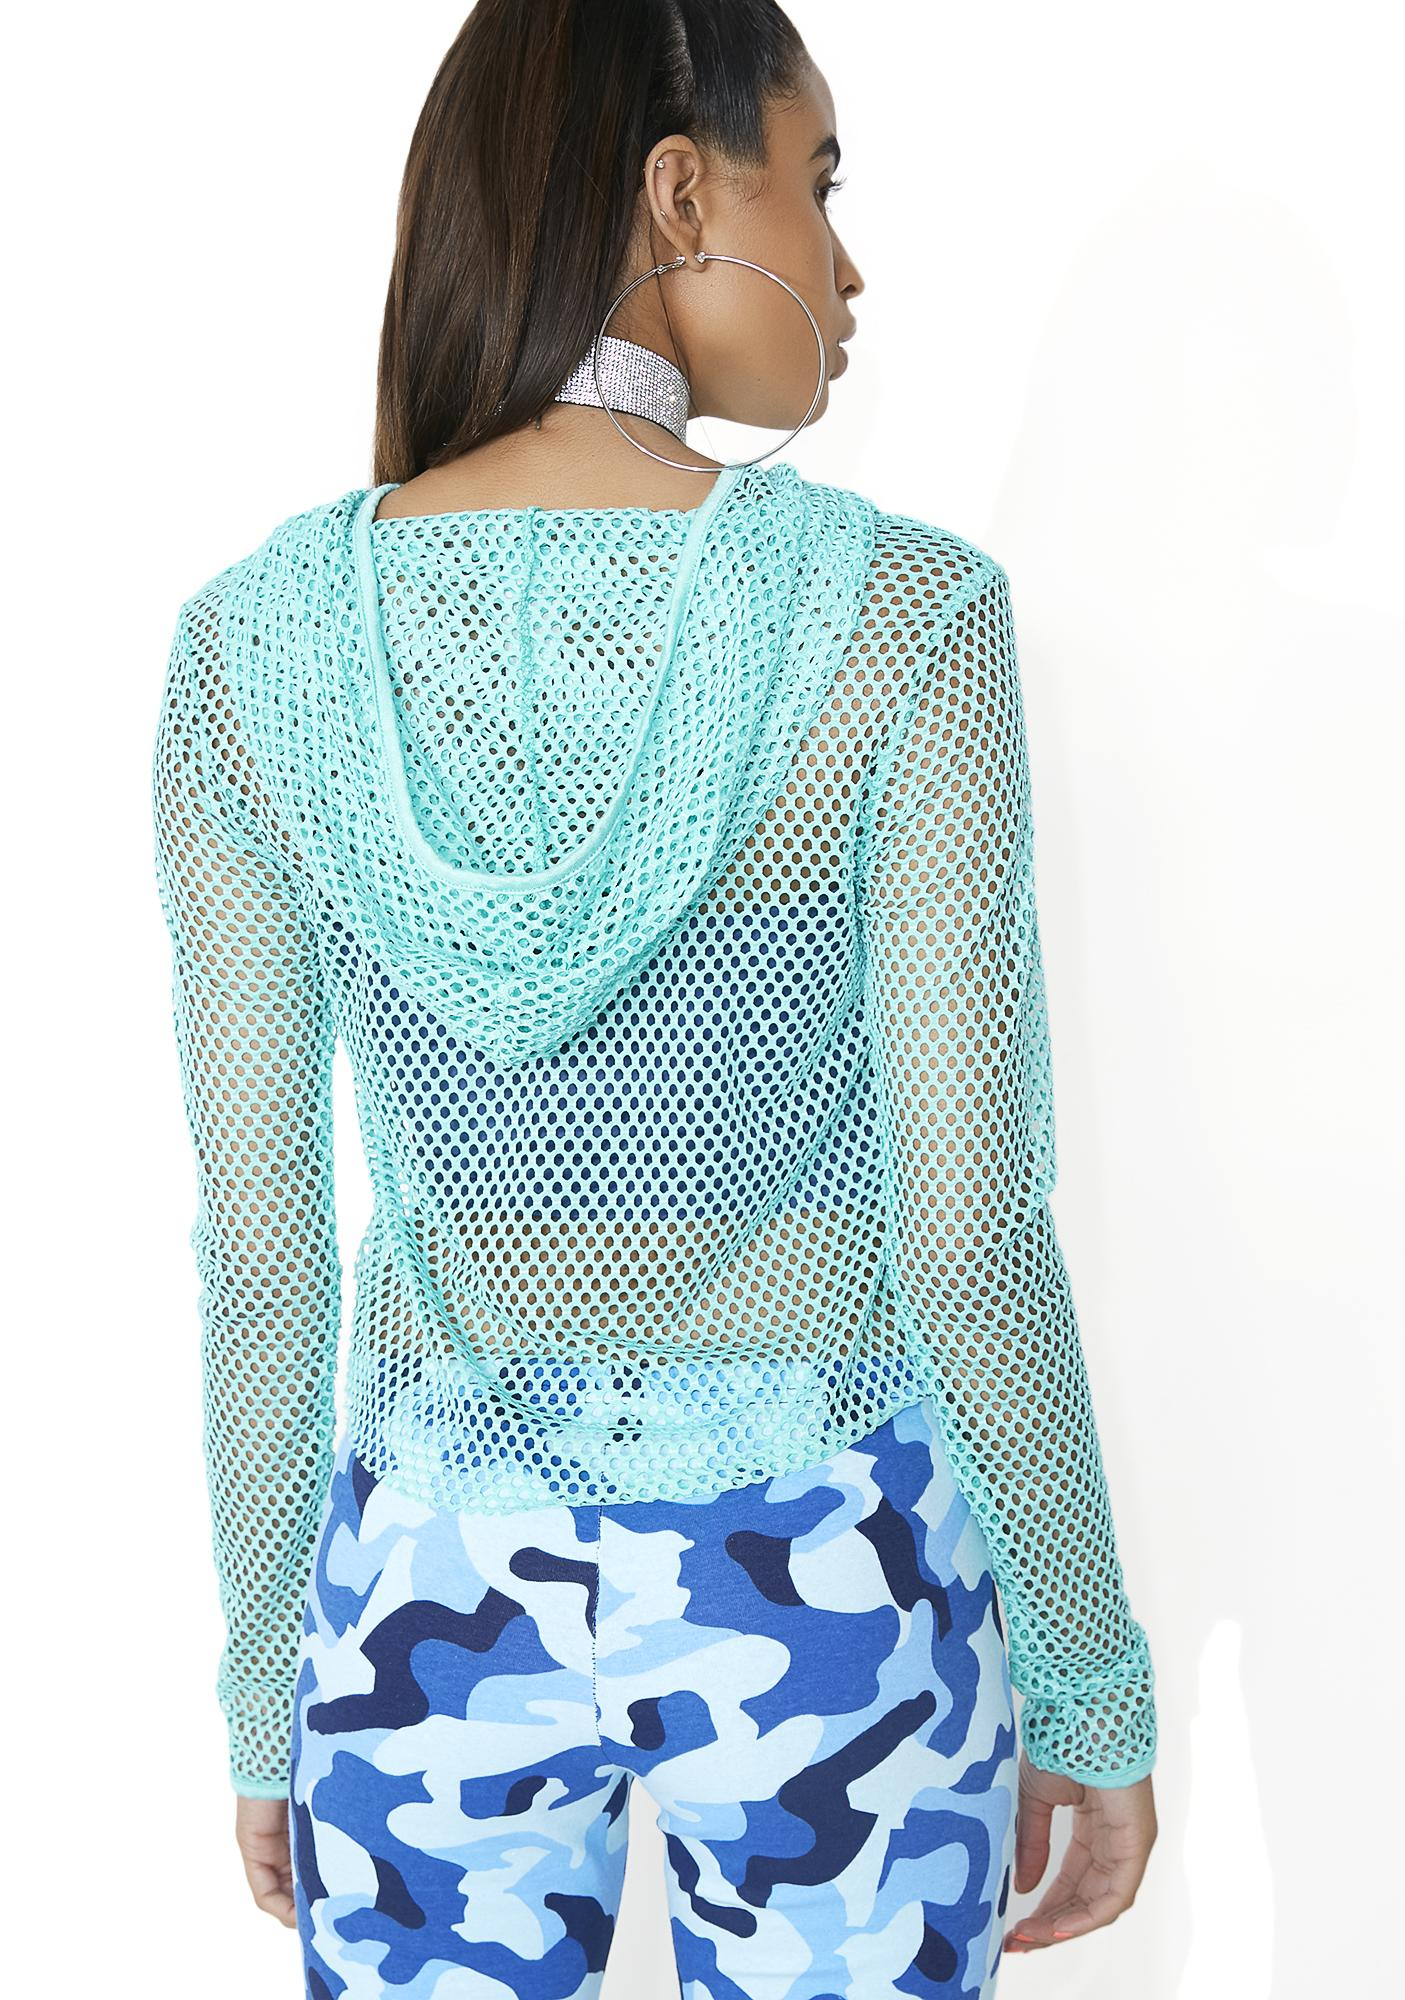 In The Riptide Fishnet Cropped Hoodie